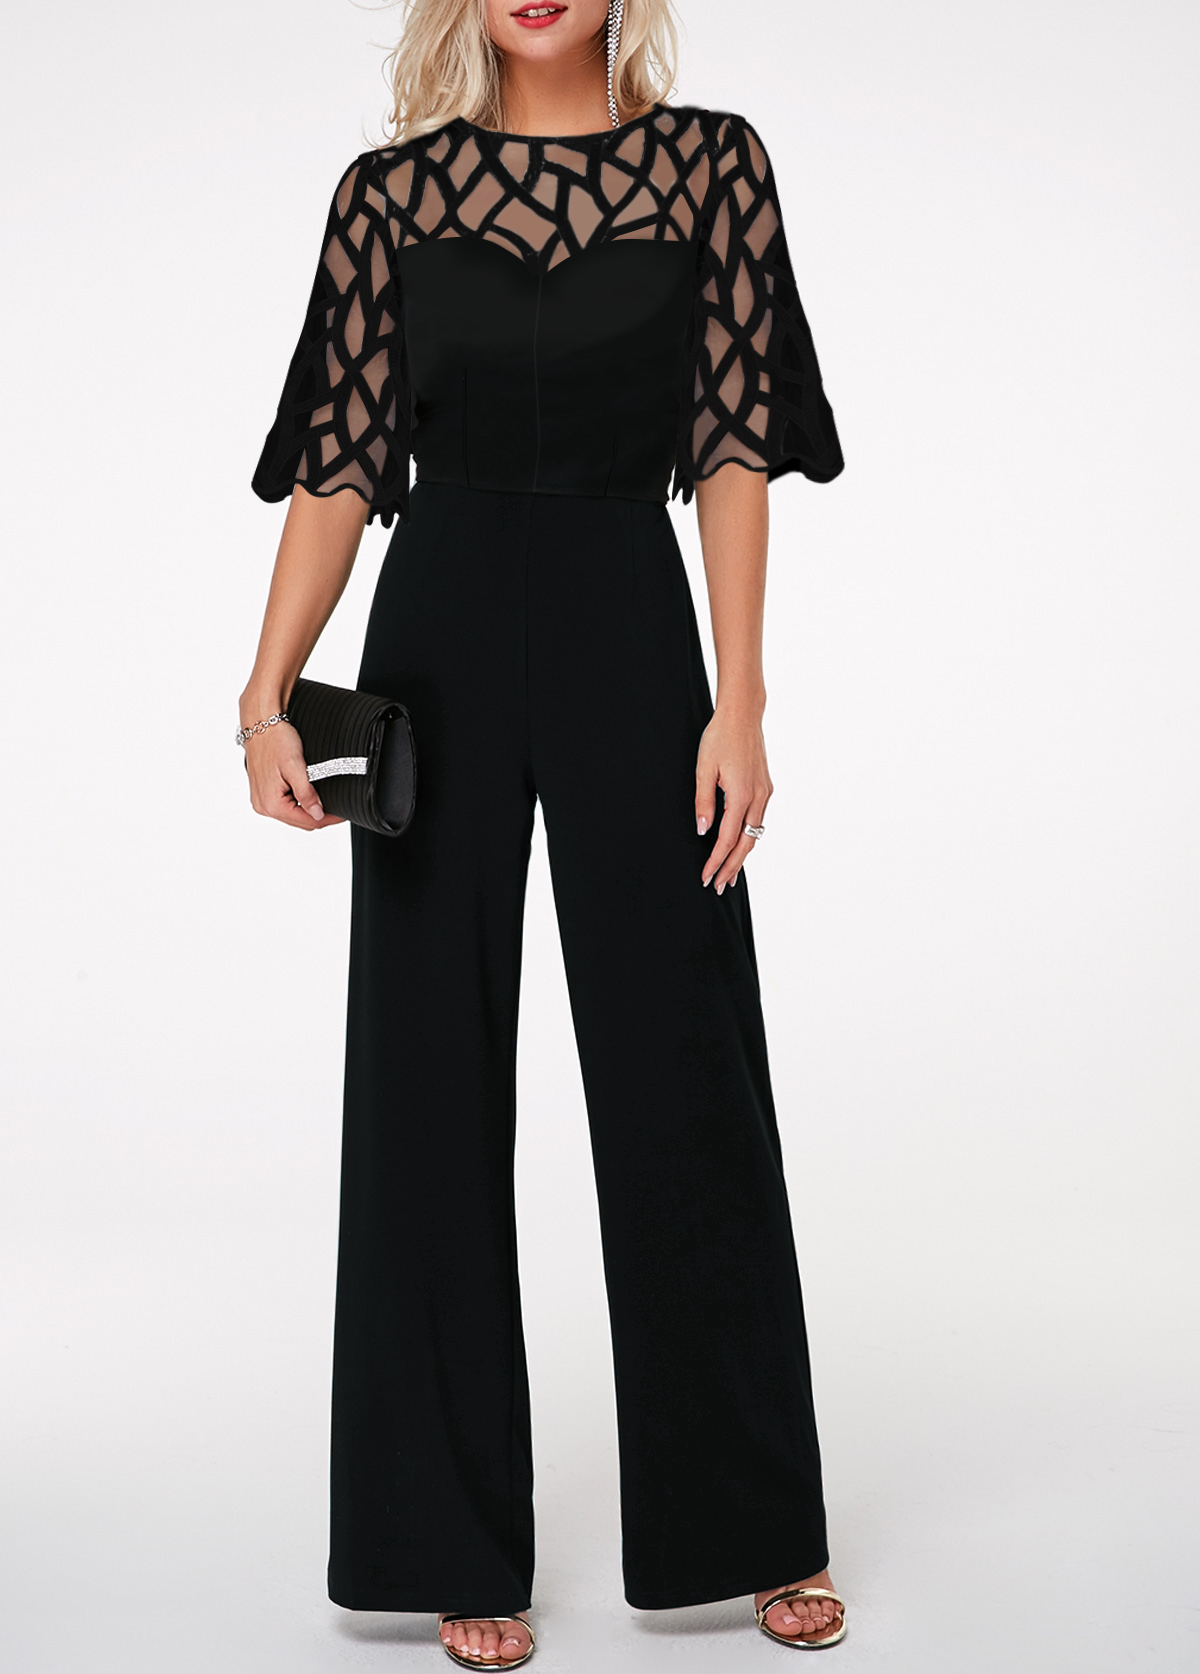 Round Neck Scalloped Hem Lace Panel Jumpsuit